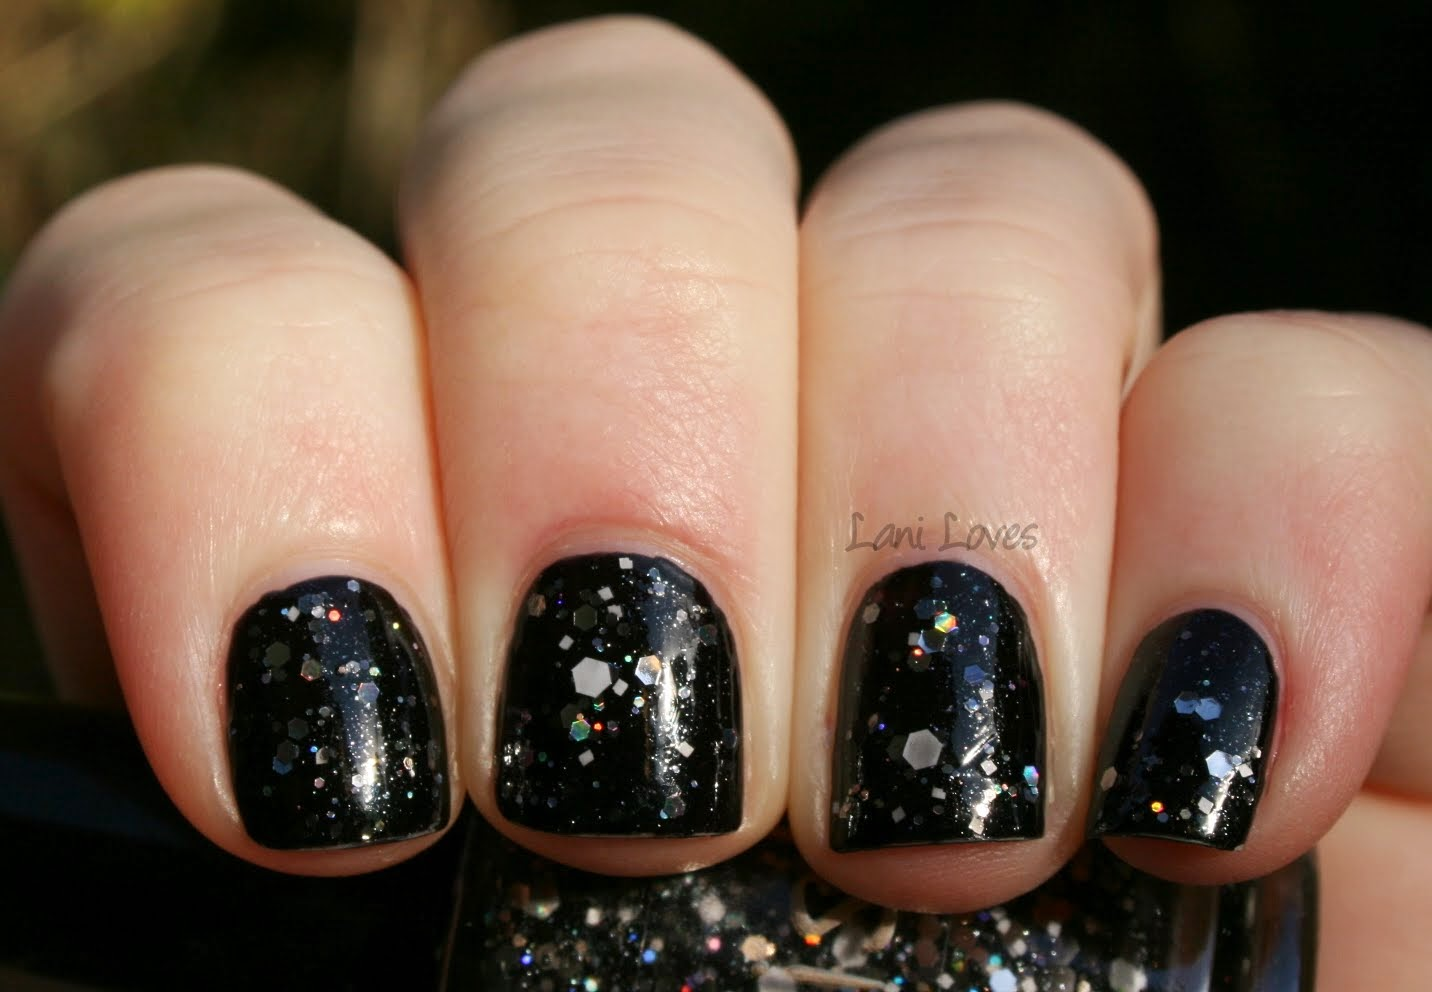 Pahlish - Bony Fingers swatch